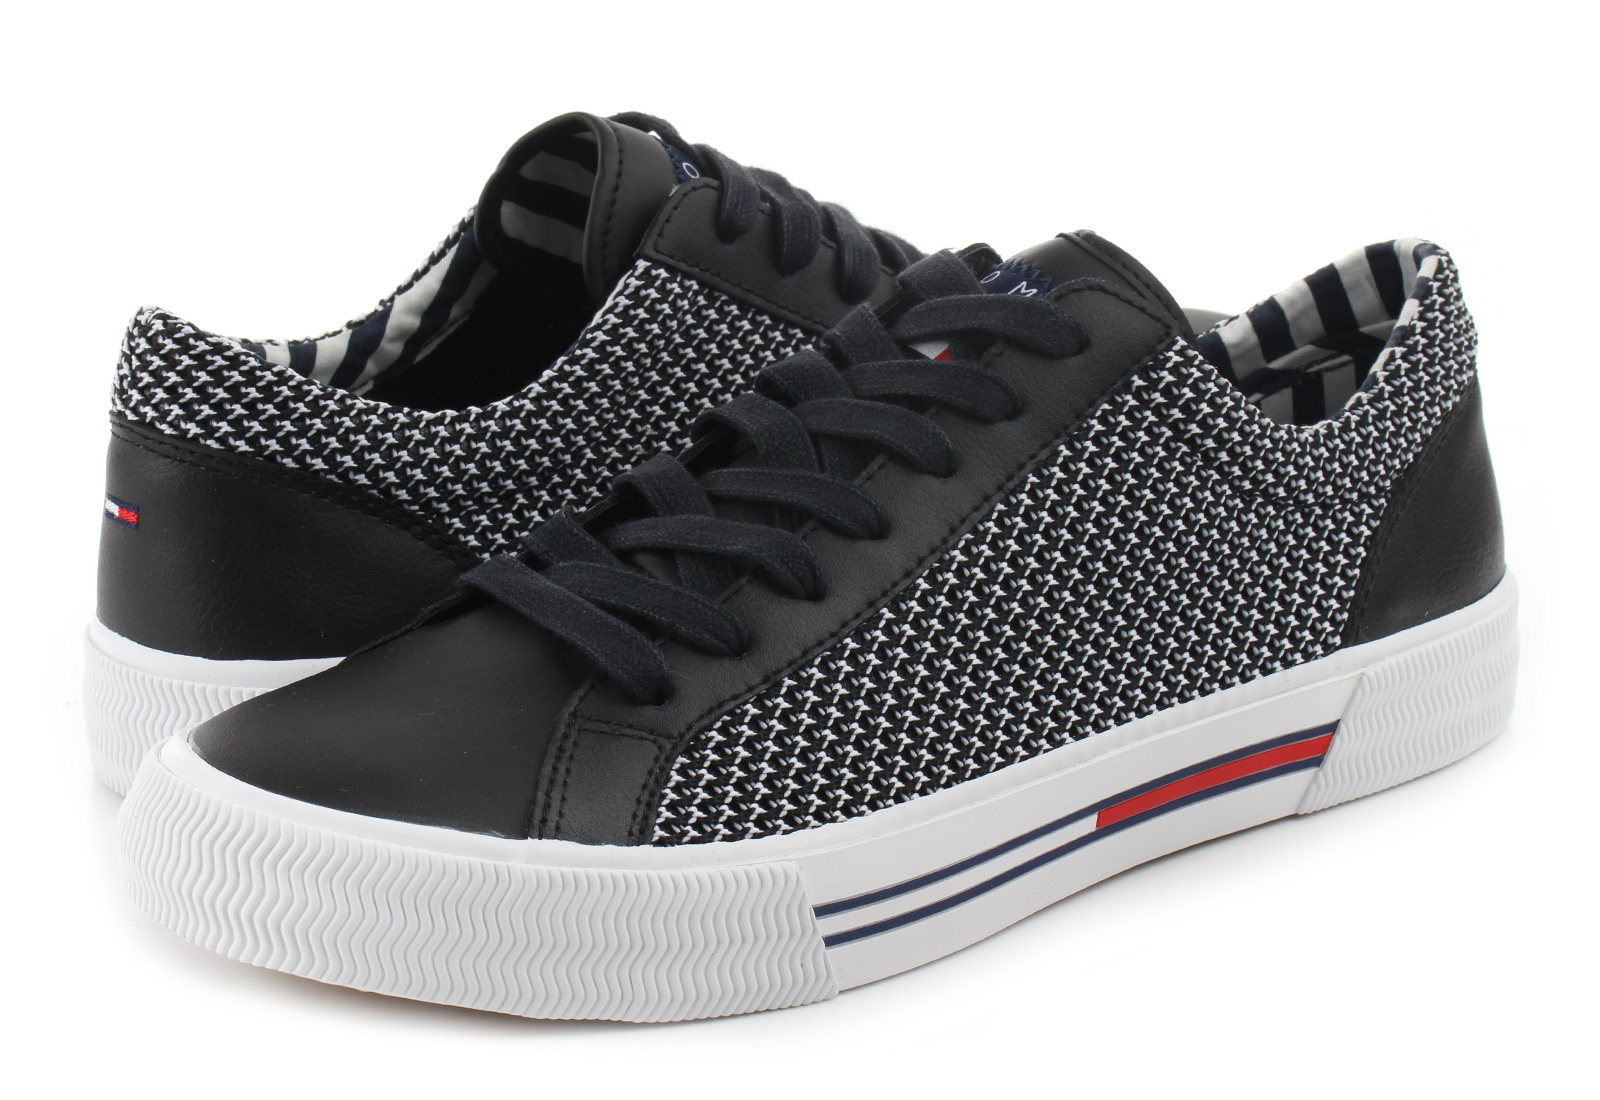 6dd78aaef8 Tommy Hilfiger Cipő - Dale 5c1 - 19S-0199-990 - Office Shoes ...